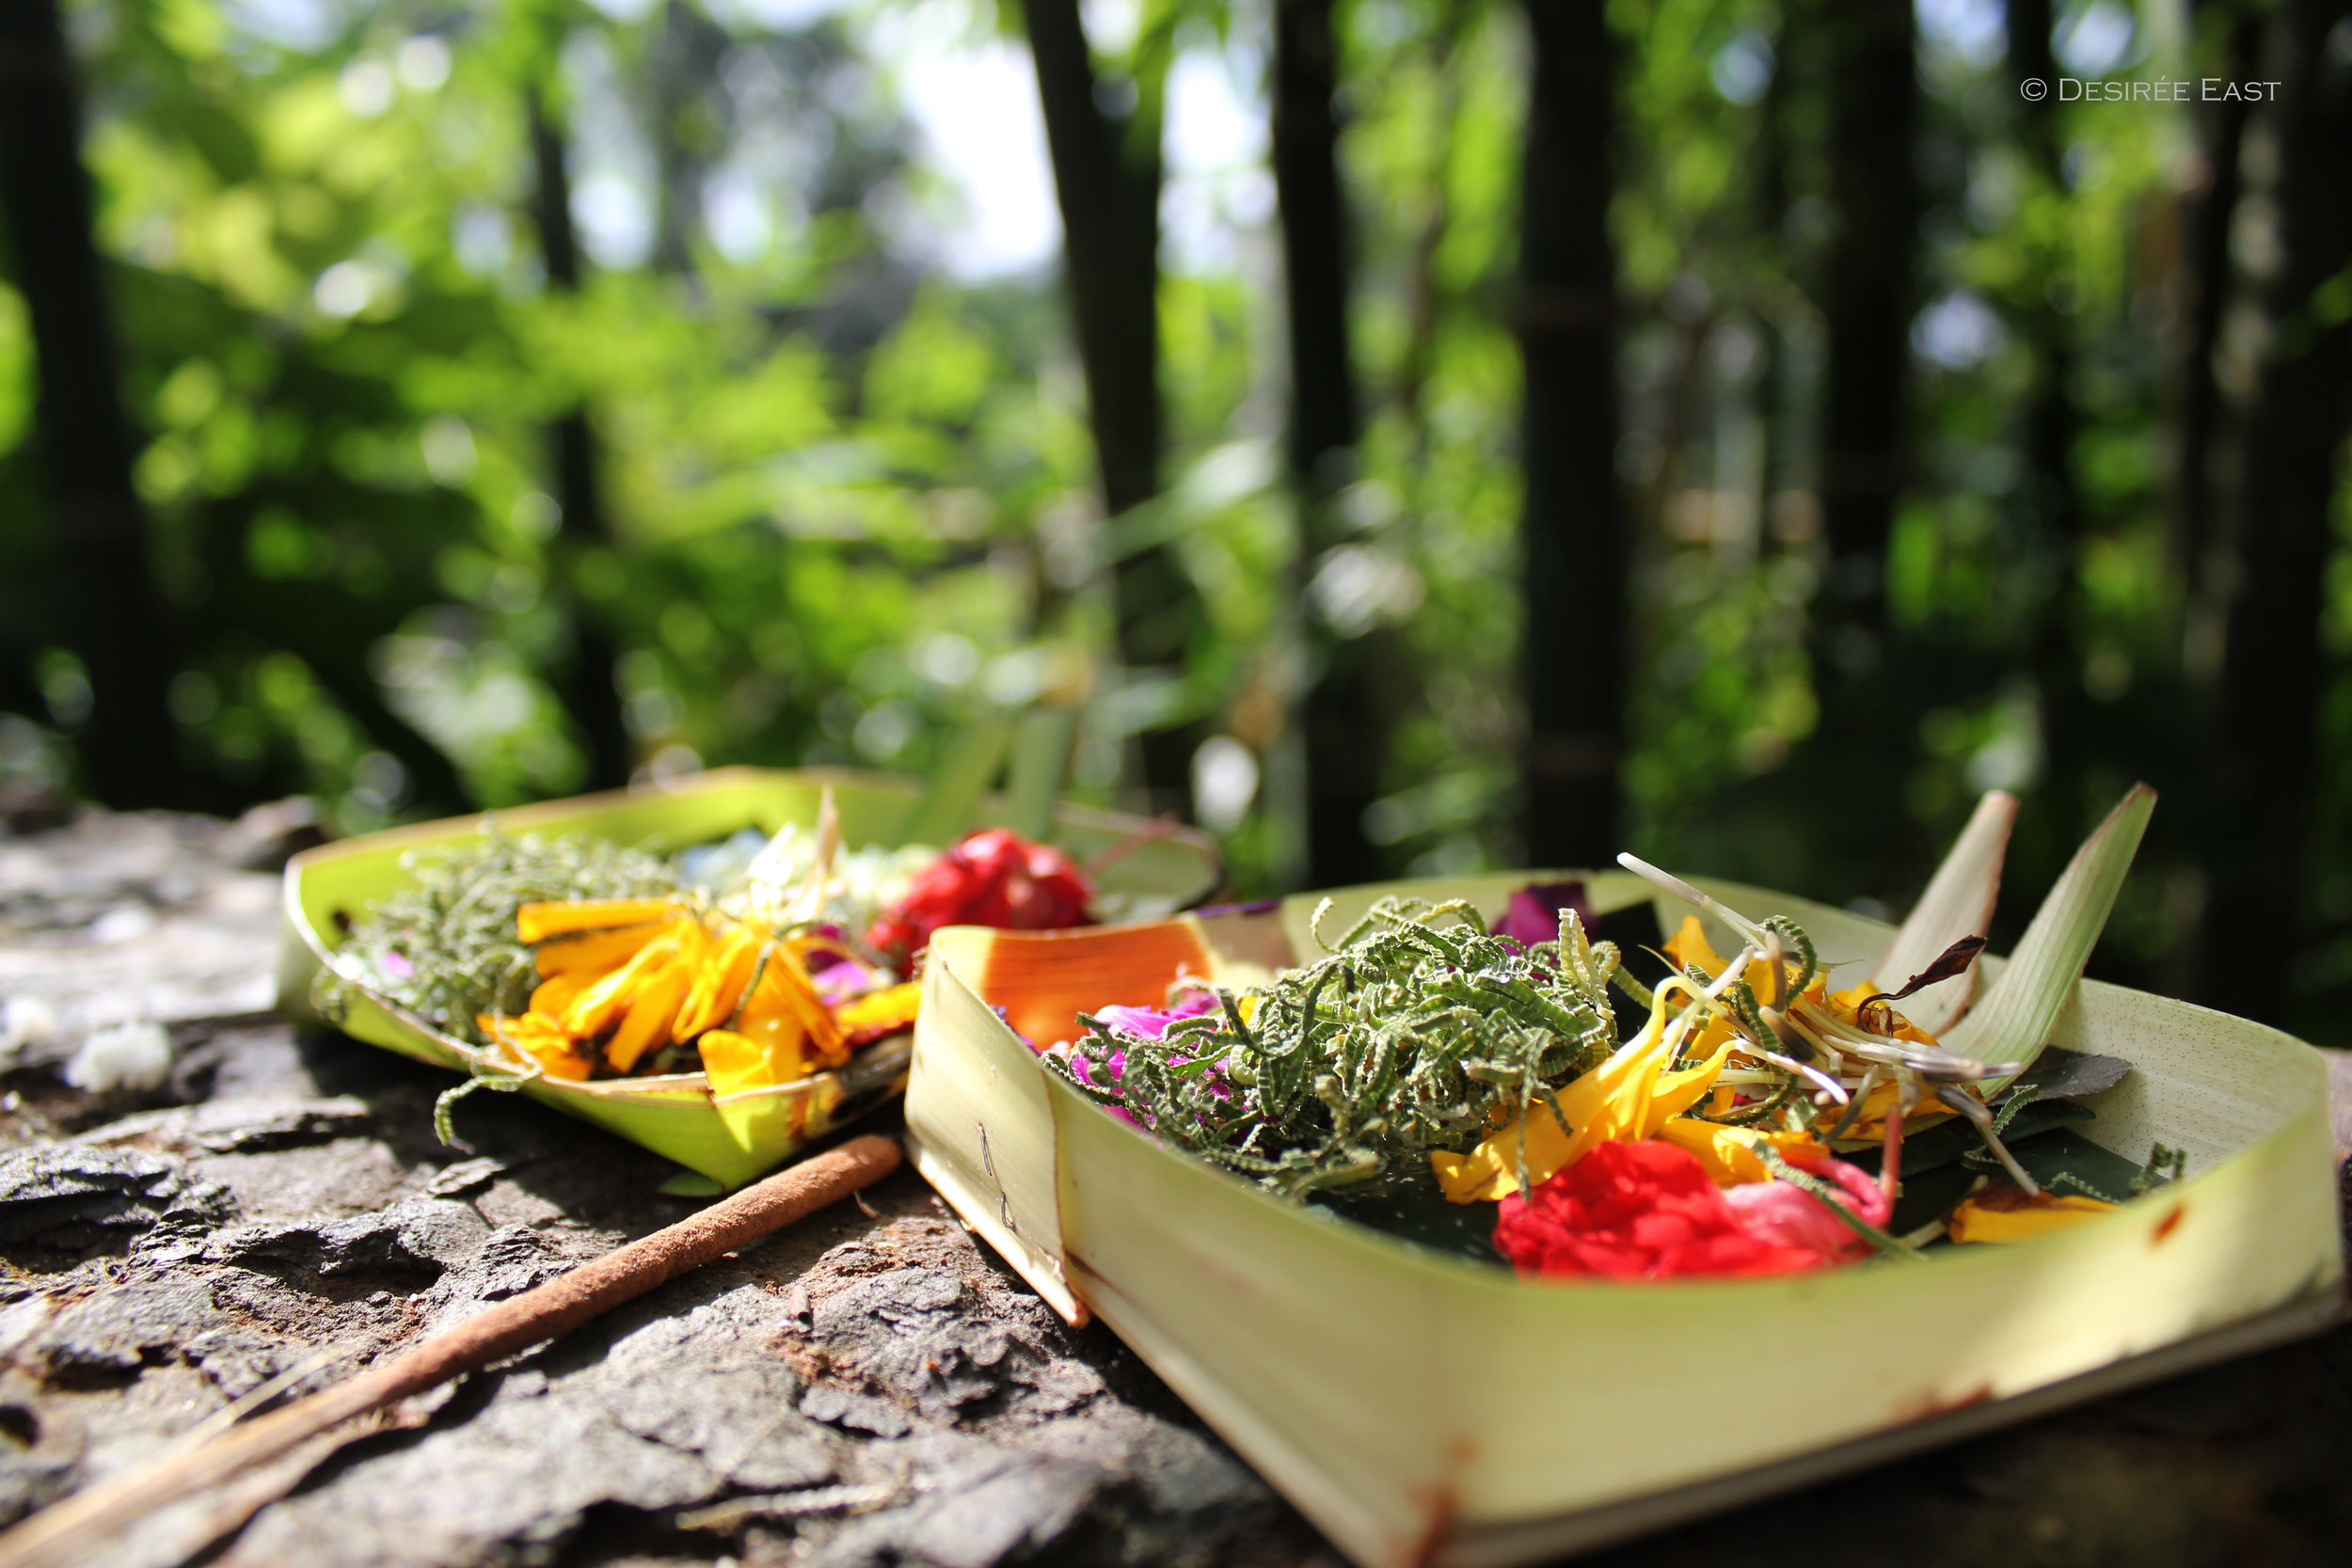 bridge offerings. ubud - bali, indonesia. photo by desiree east